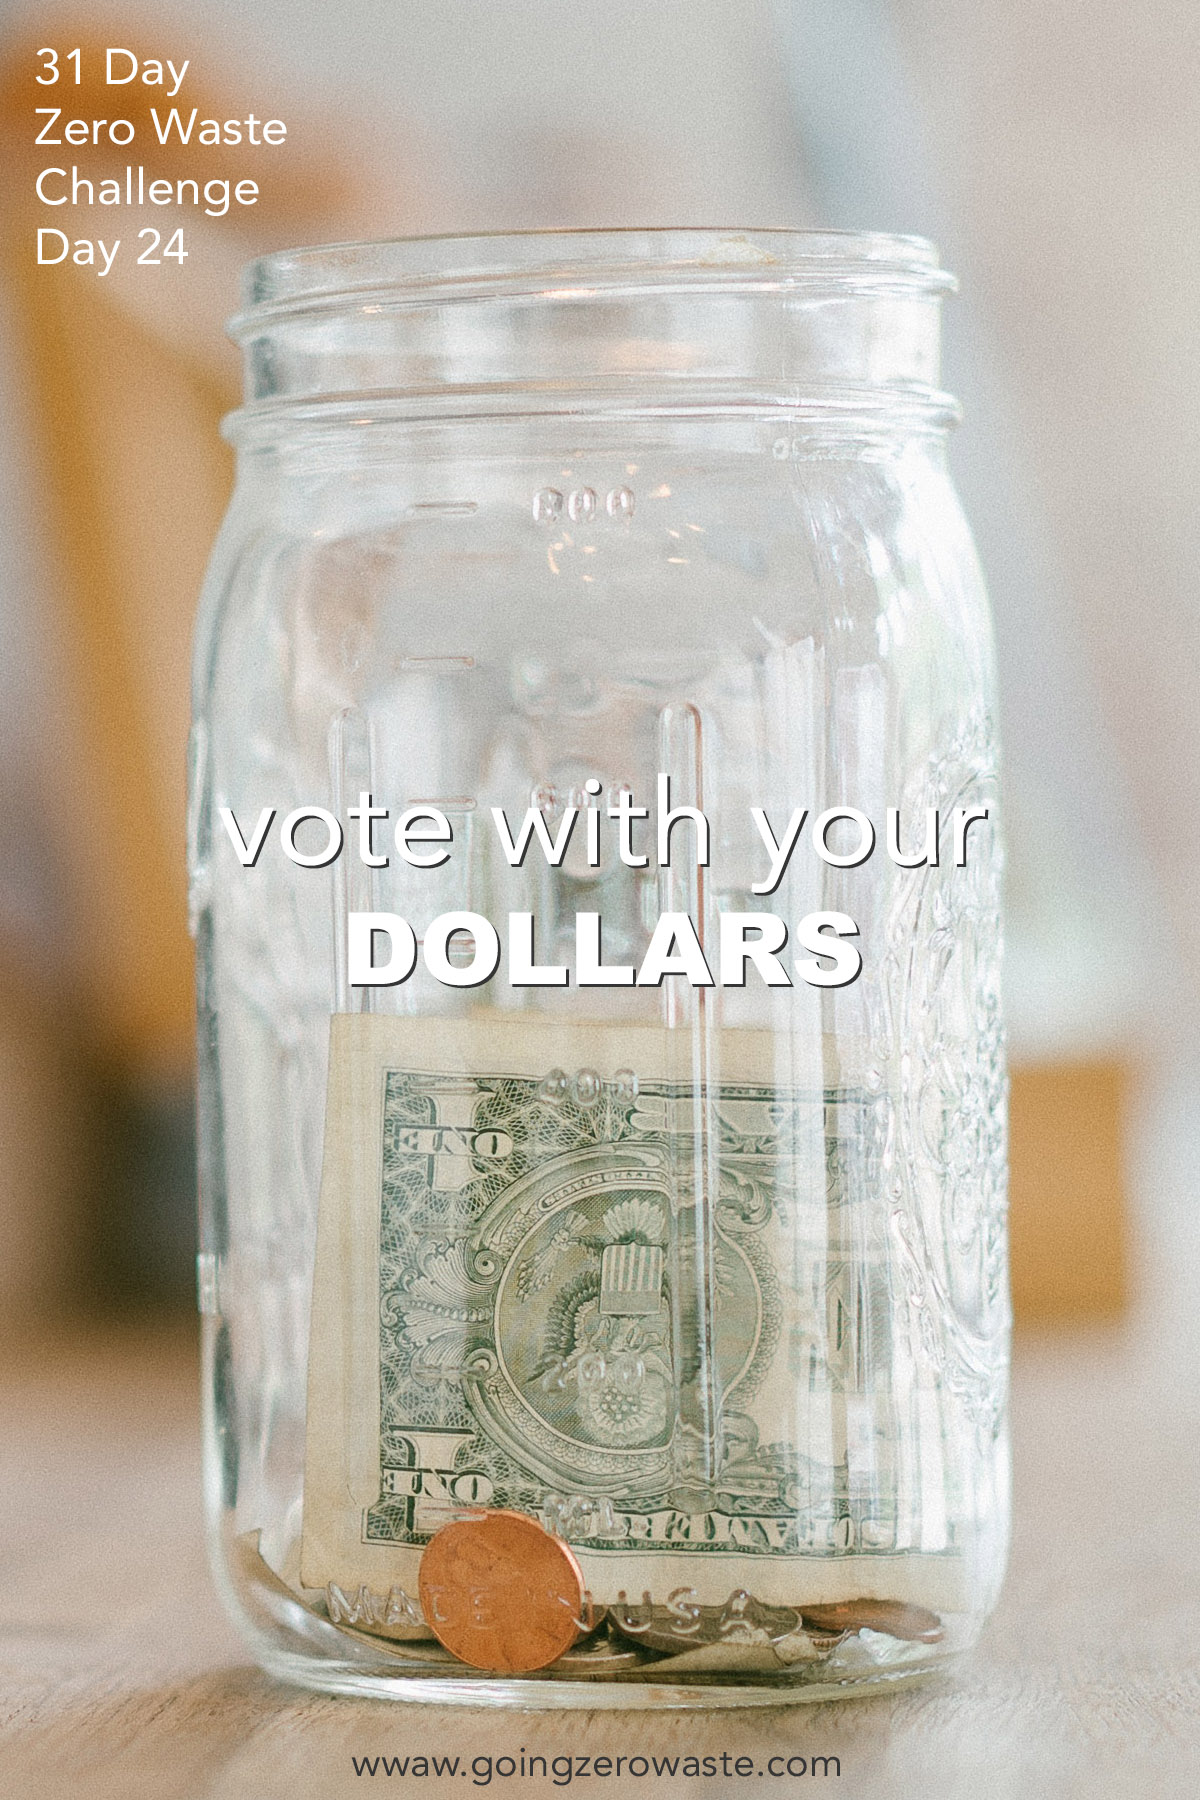 Vote with your dollars day 24 of the zero waste challenge from www.hoinhzerowaste.com #zerowaste #zerowastechallenge #ecofriendly #votewithyourdollars